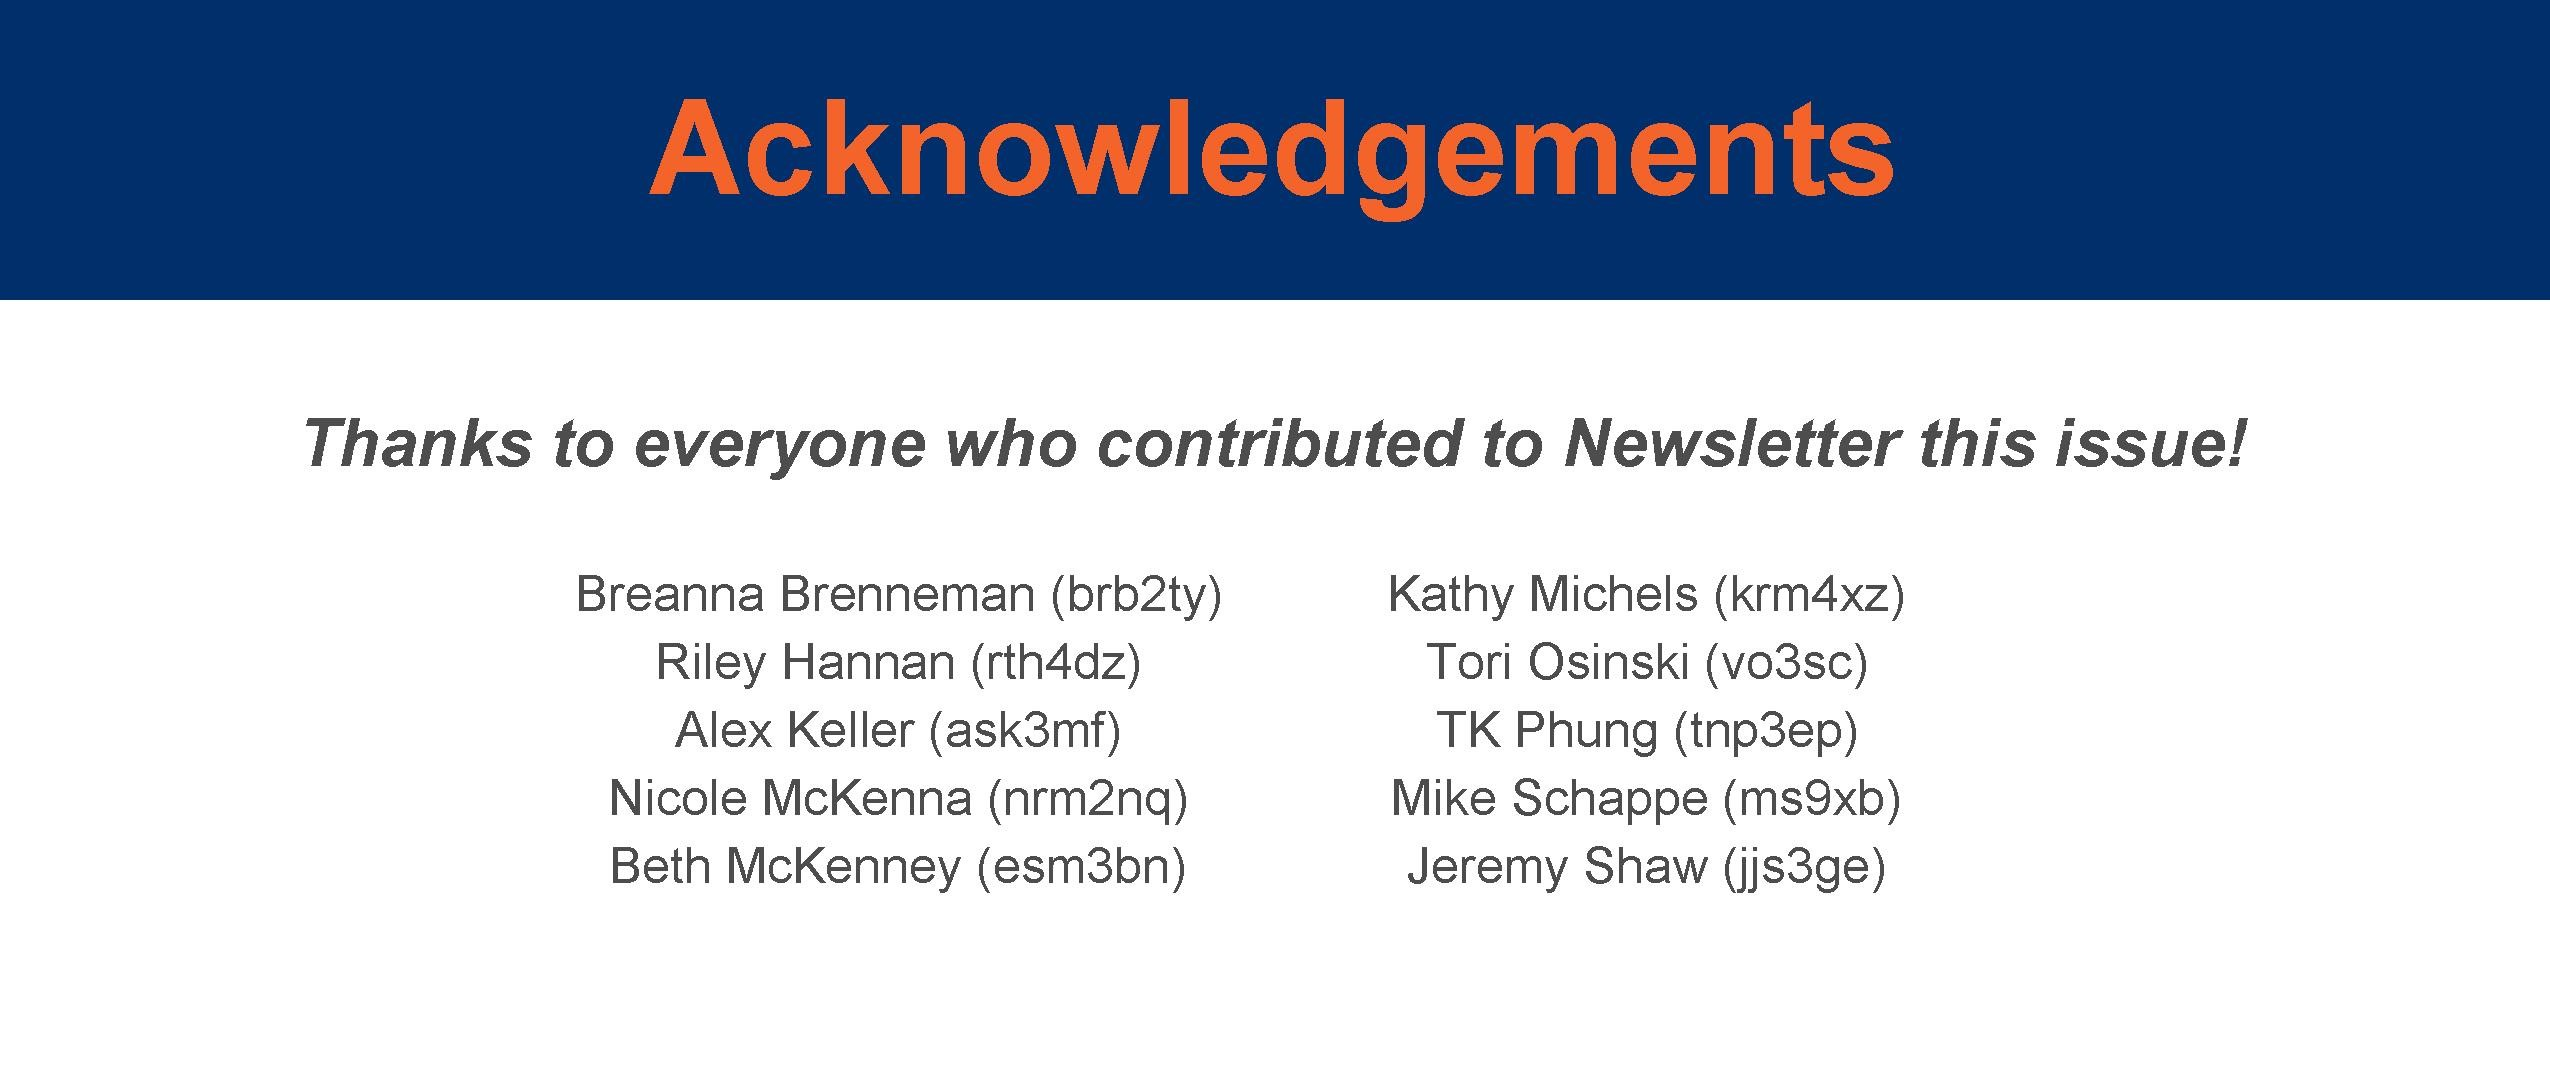 Acknowledgements 1